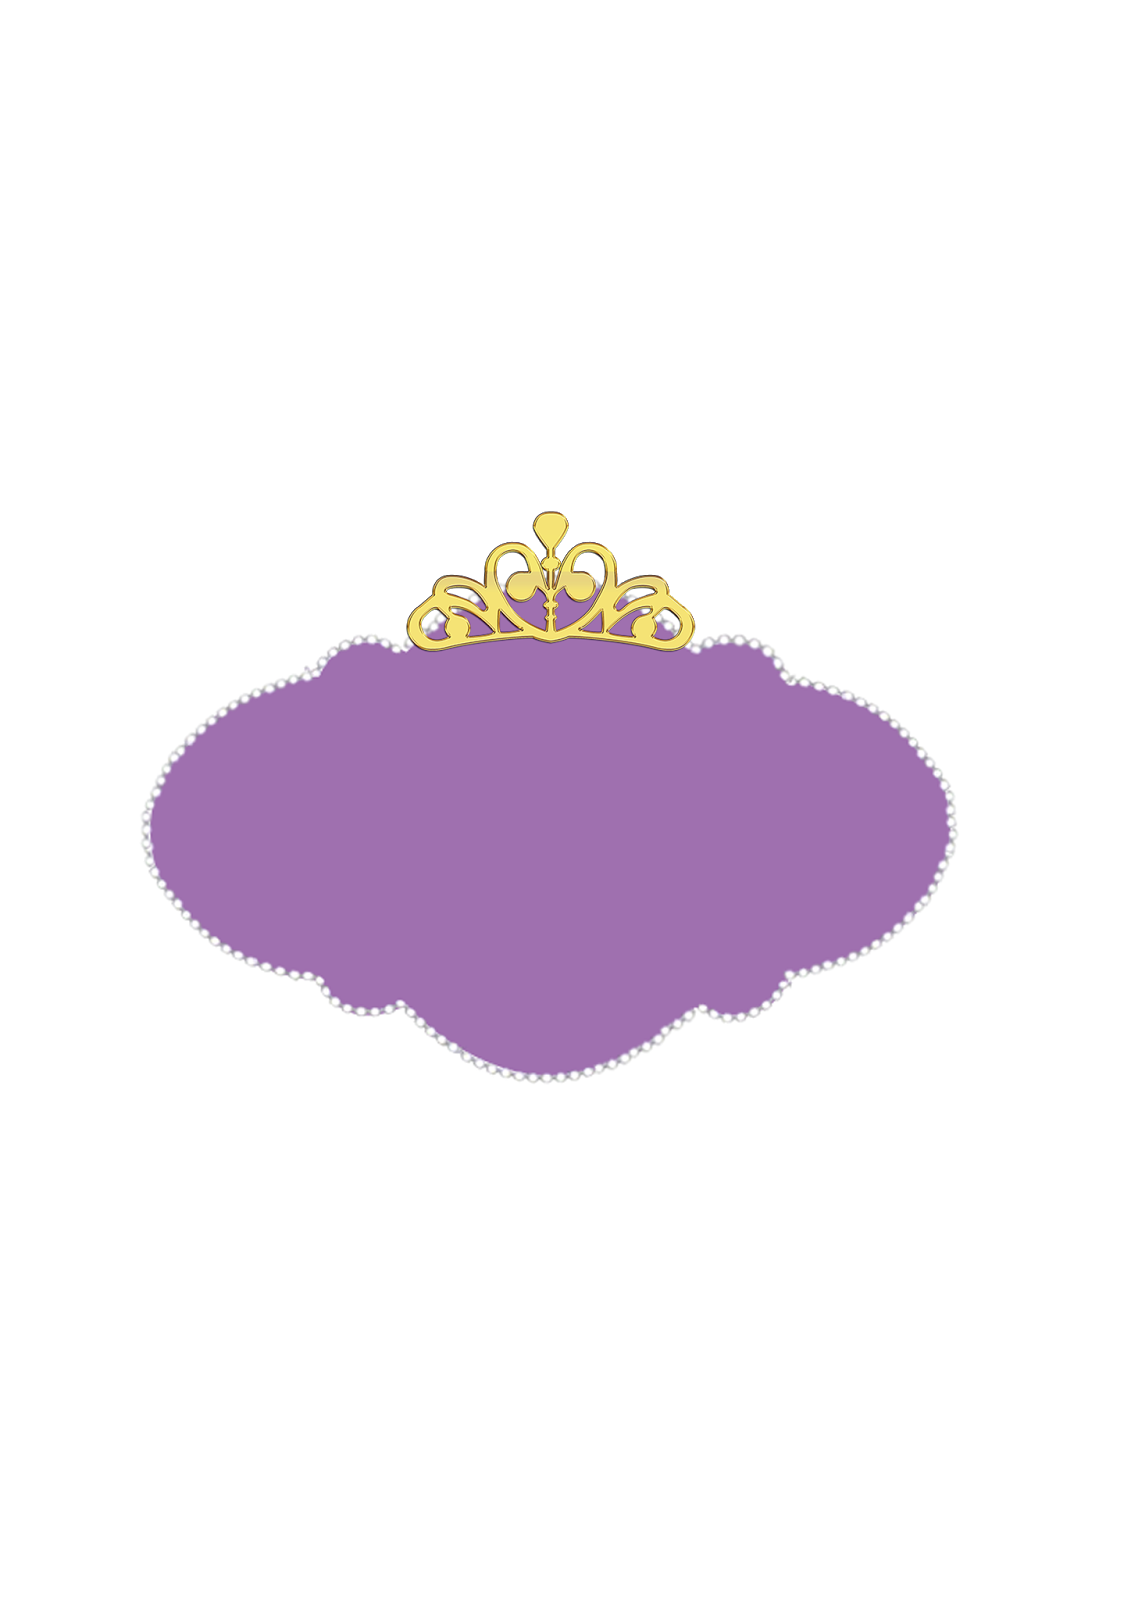 Princess pinterest. Crown clipart purple